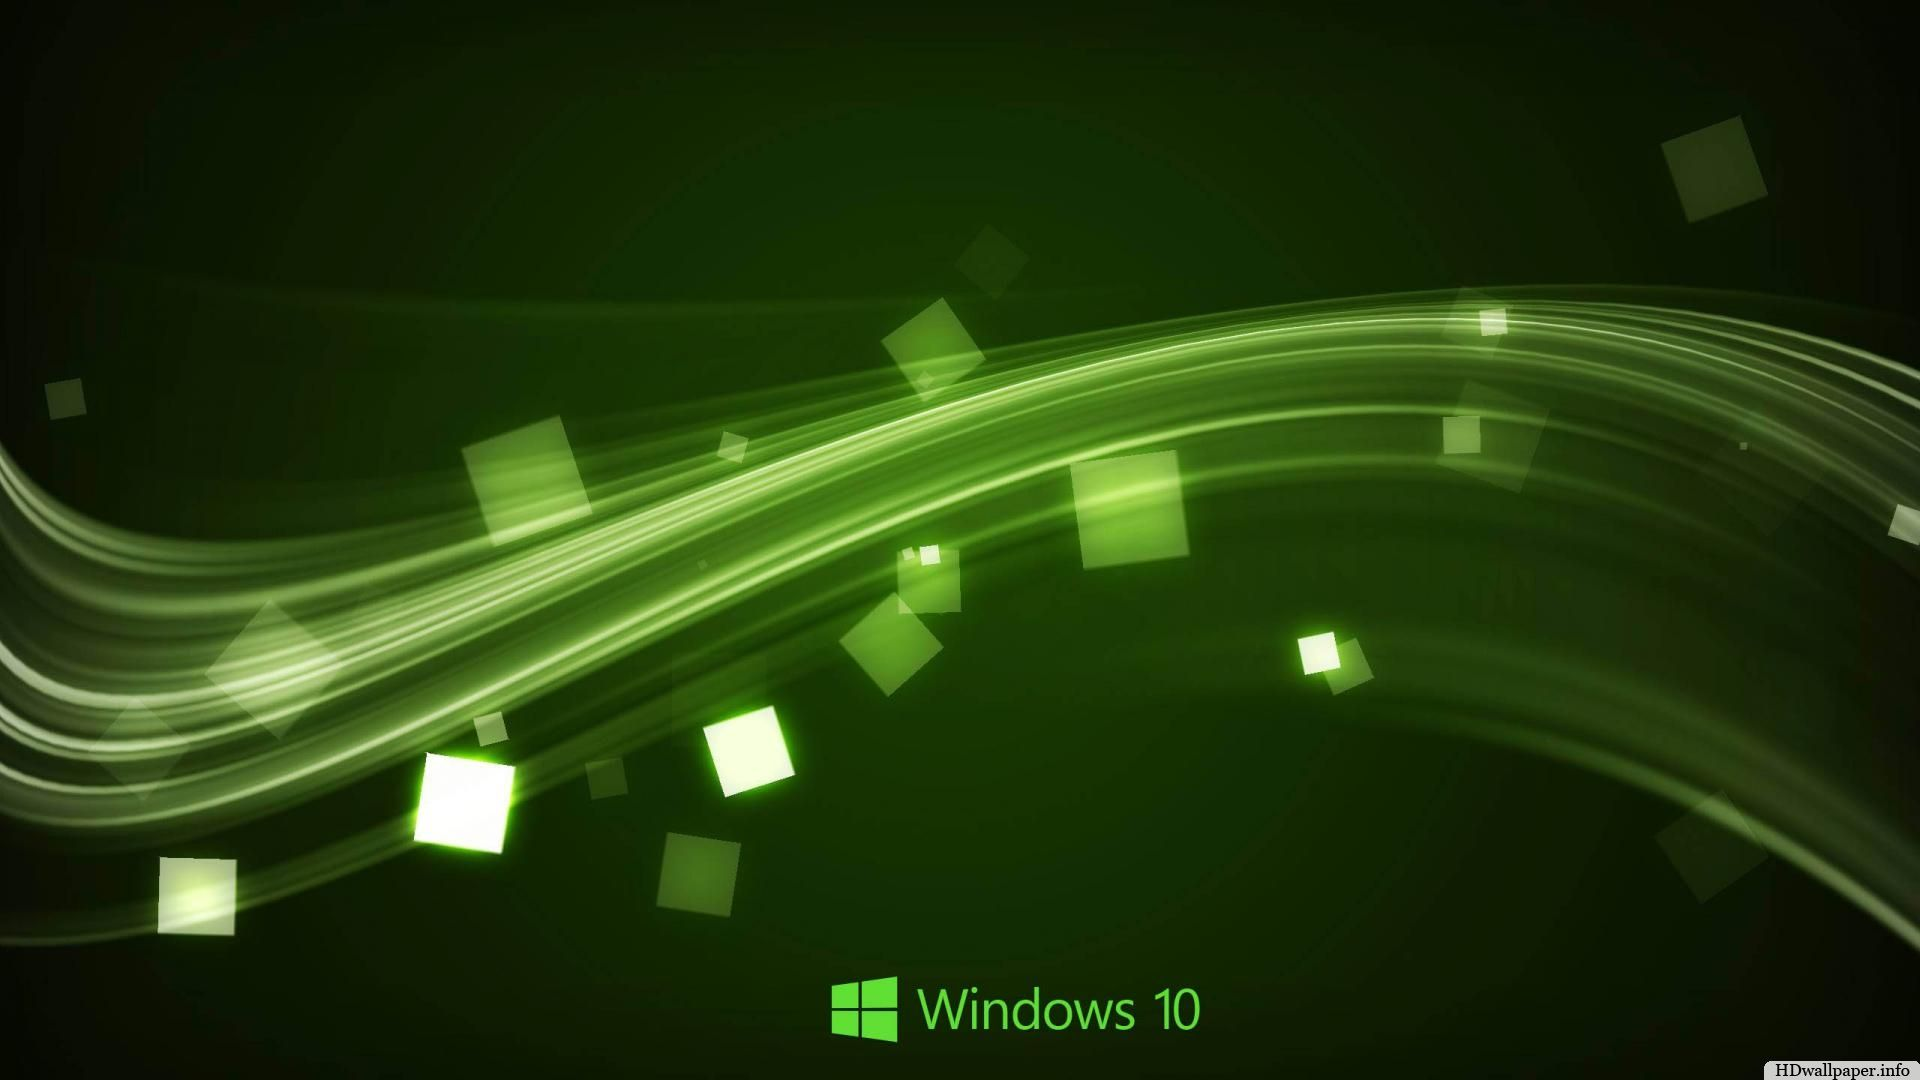 windows wallpaper 1920x1080 ws - photo #40